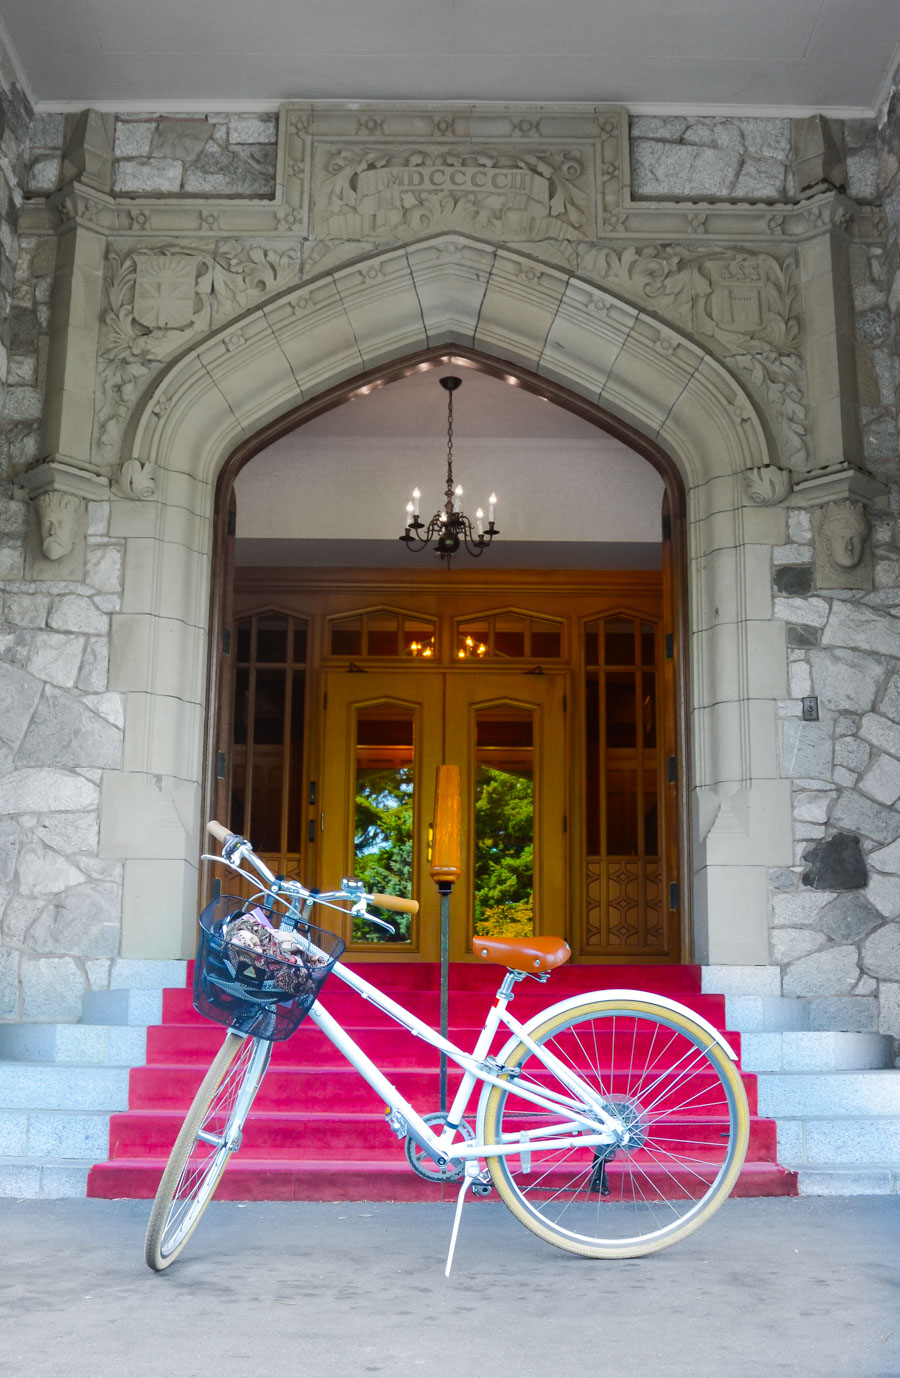 Magnolia Hotel + Spa | Where to Stay Downtown Victoria, B.C. | Government House Gardens